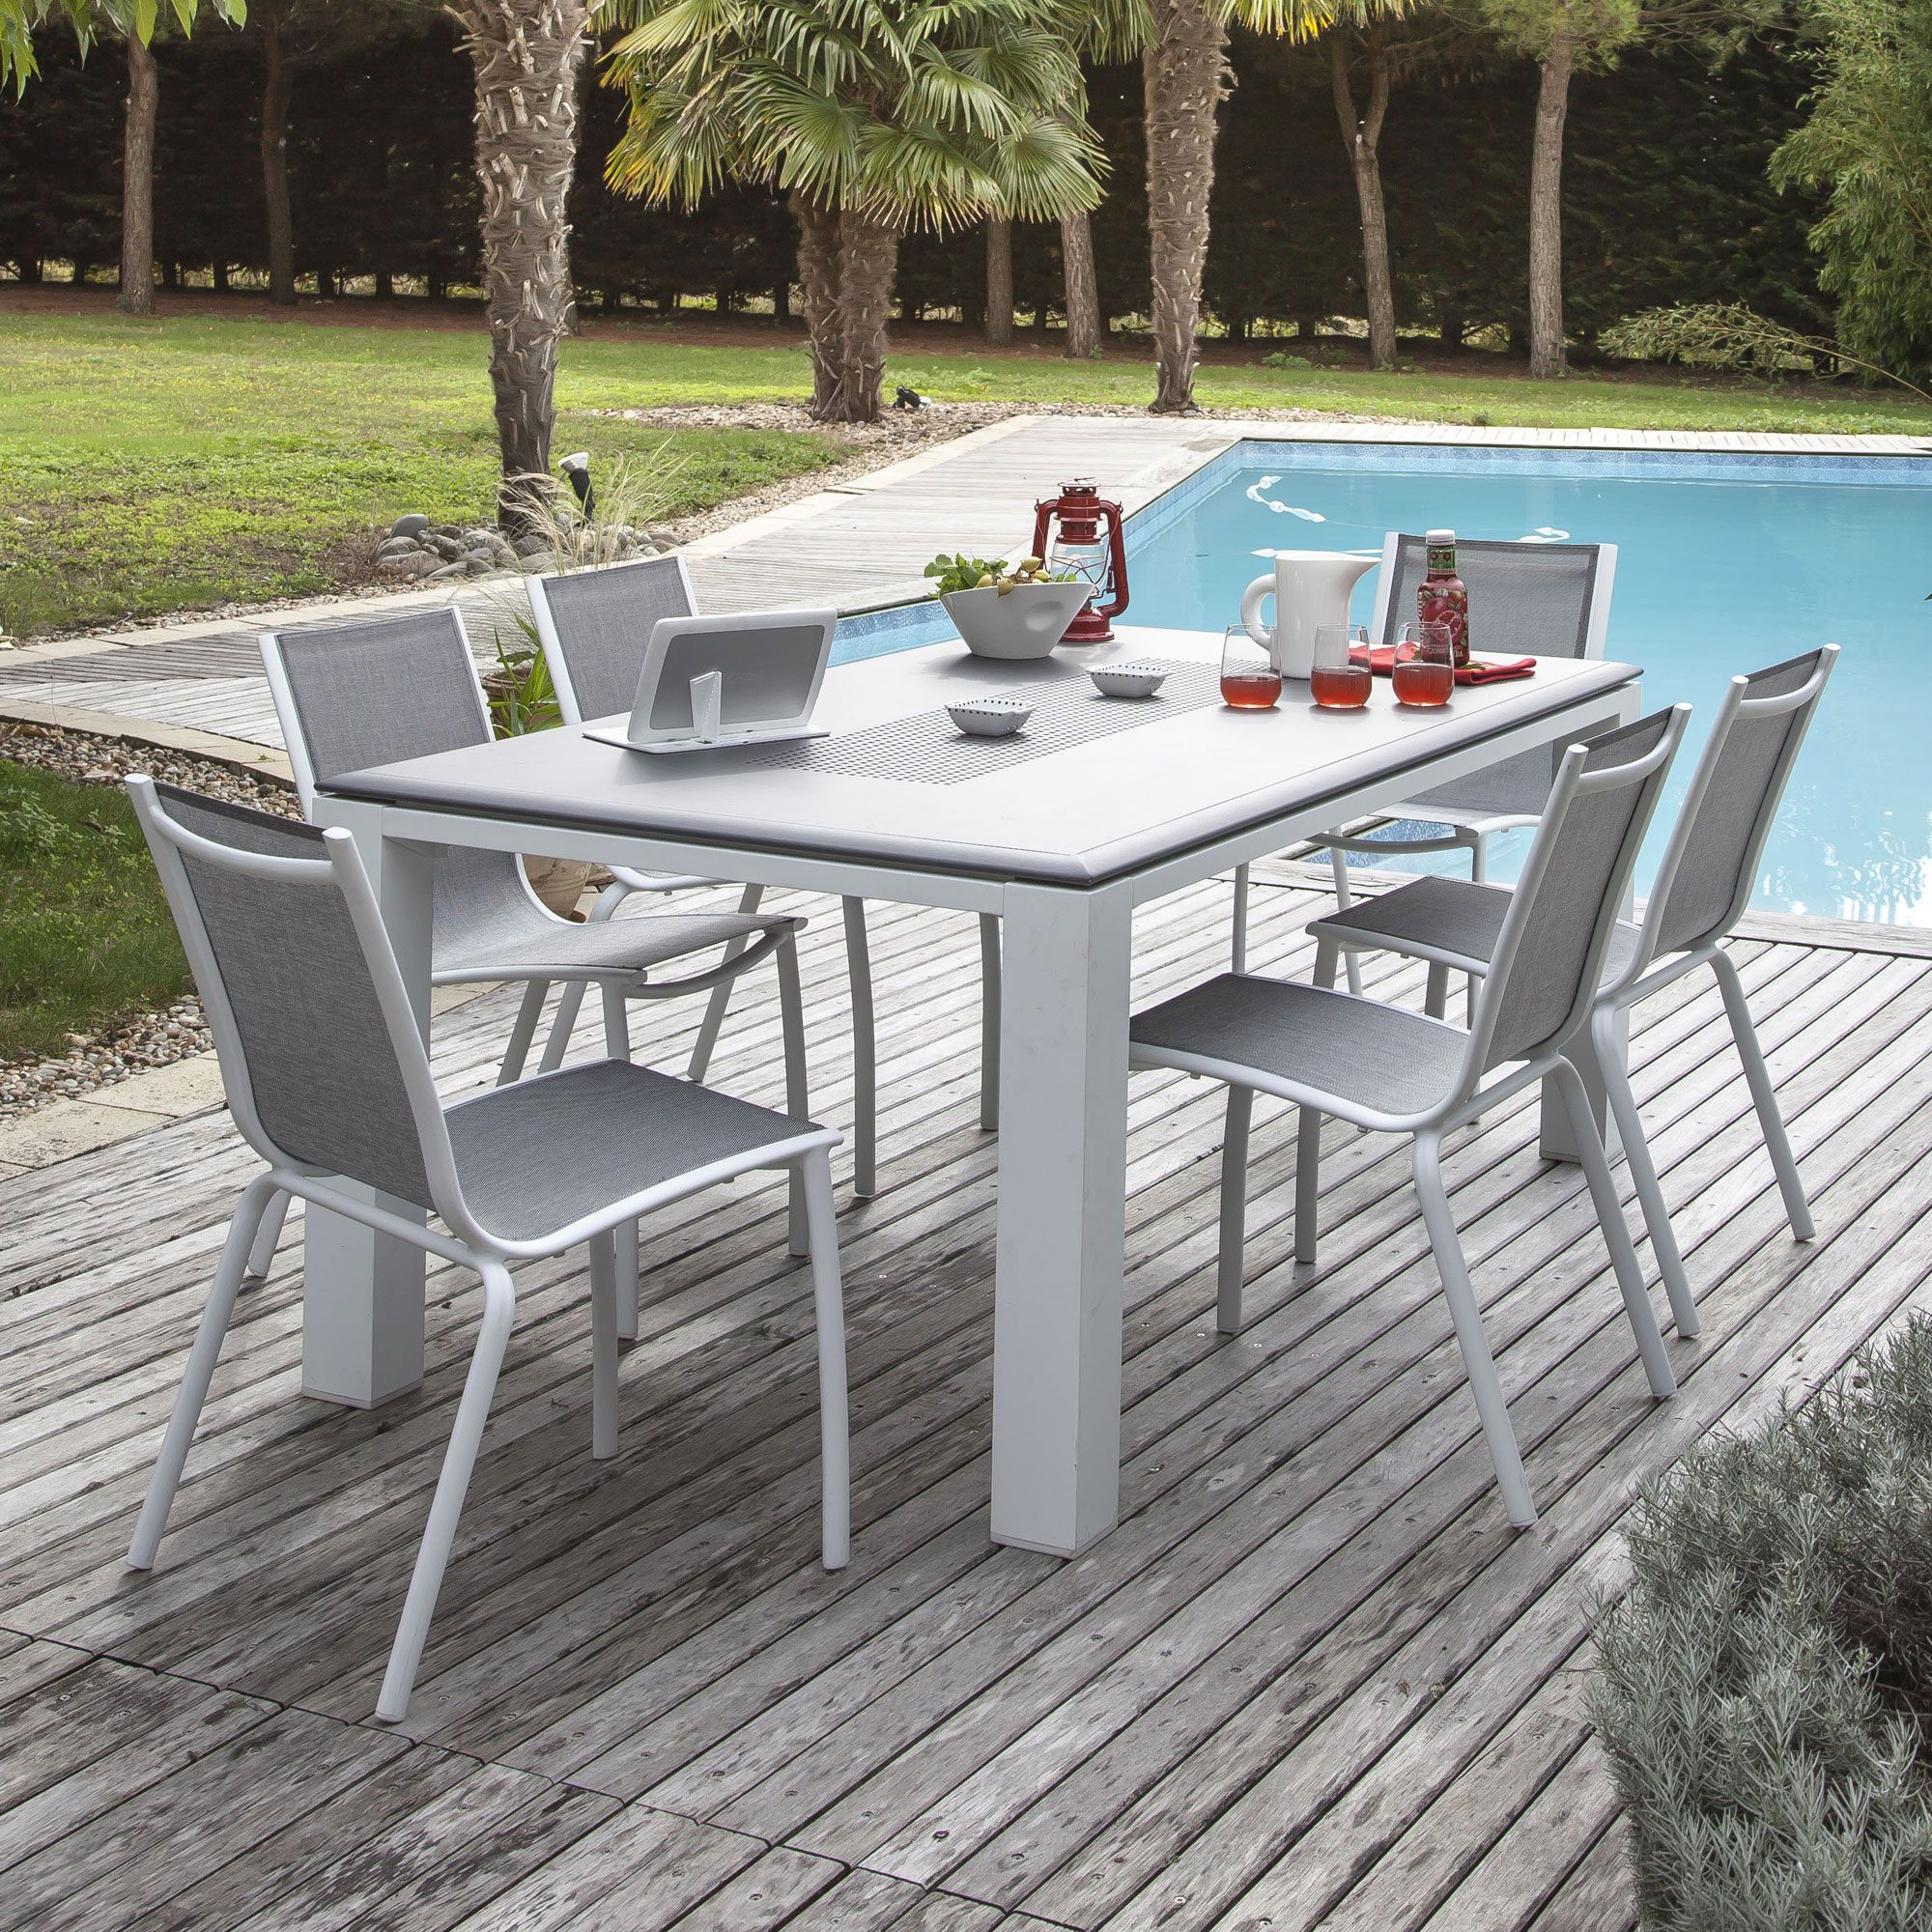 salon de jardin 6 places proloisirs jardin pinterest table aluminum table et salons. Black Bedroom Furniture Sets. Home Design Ideas